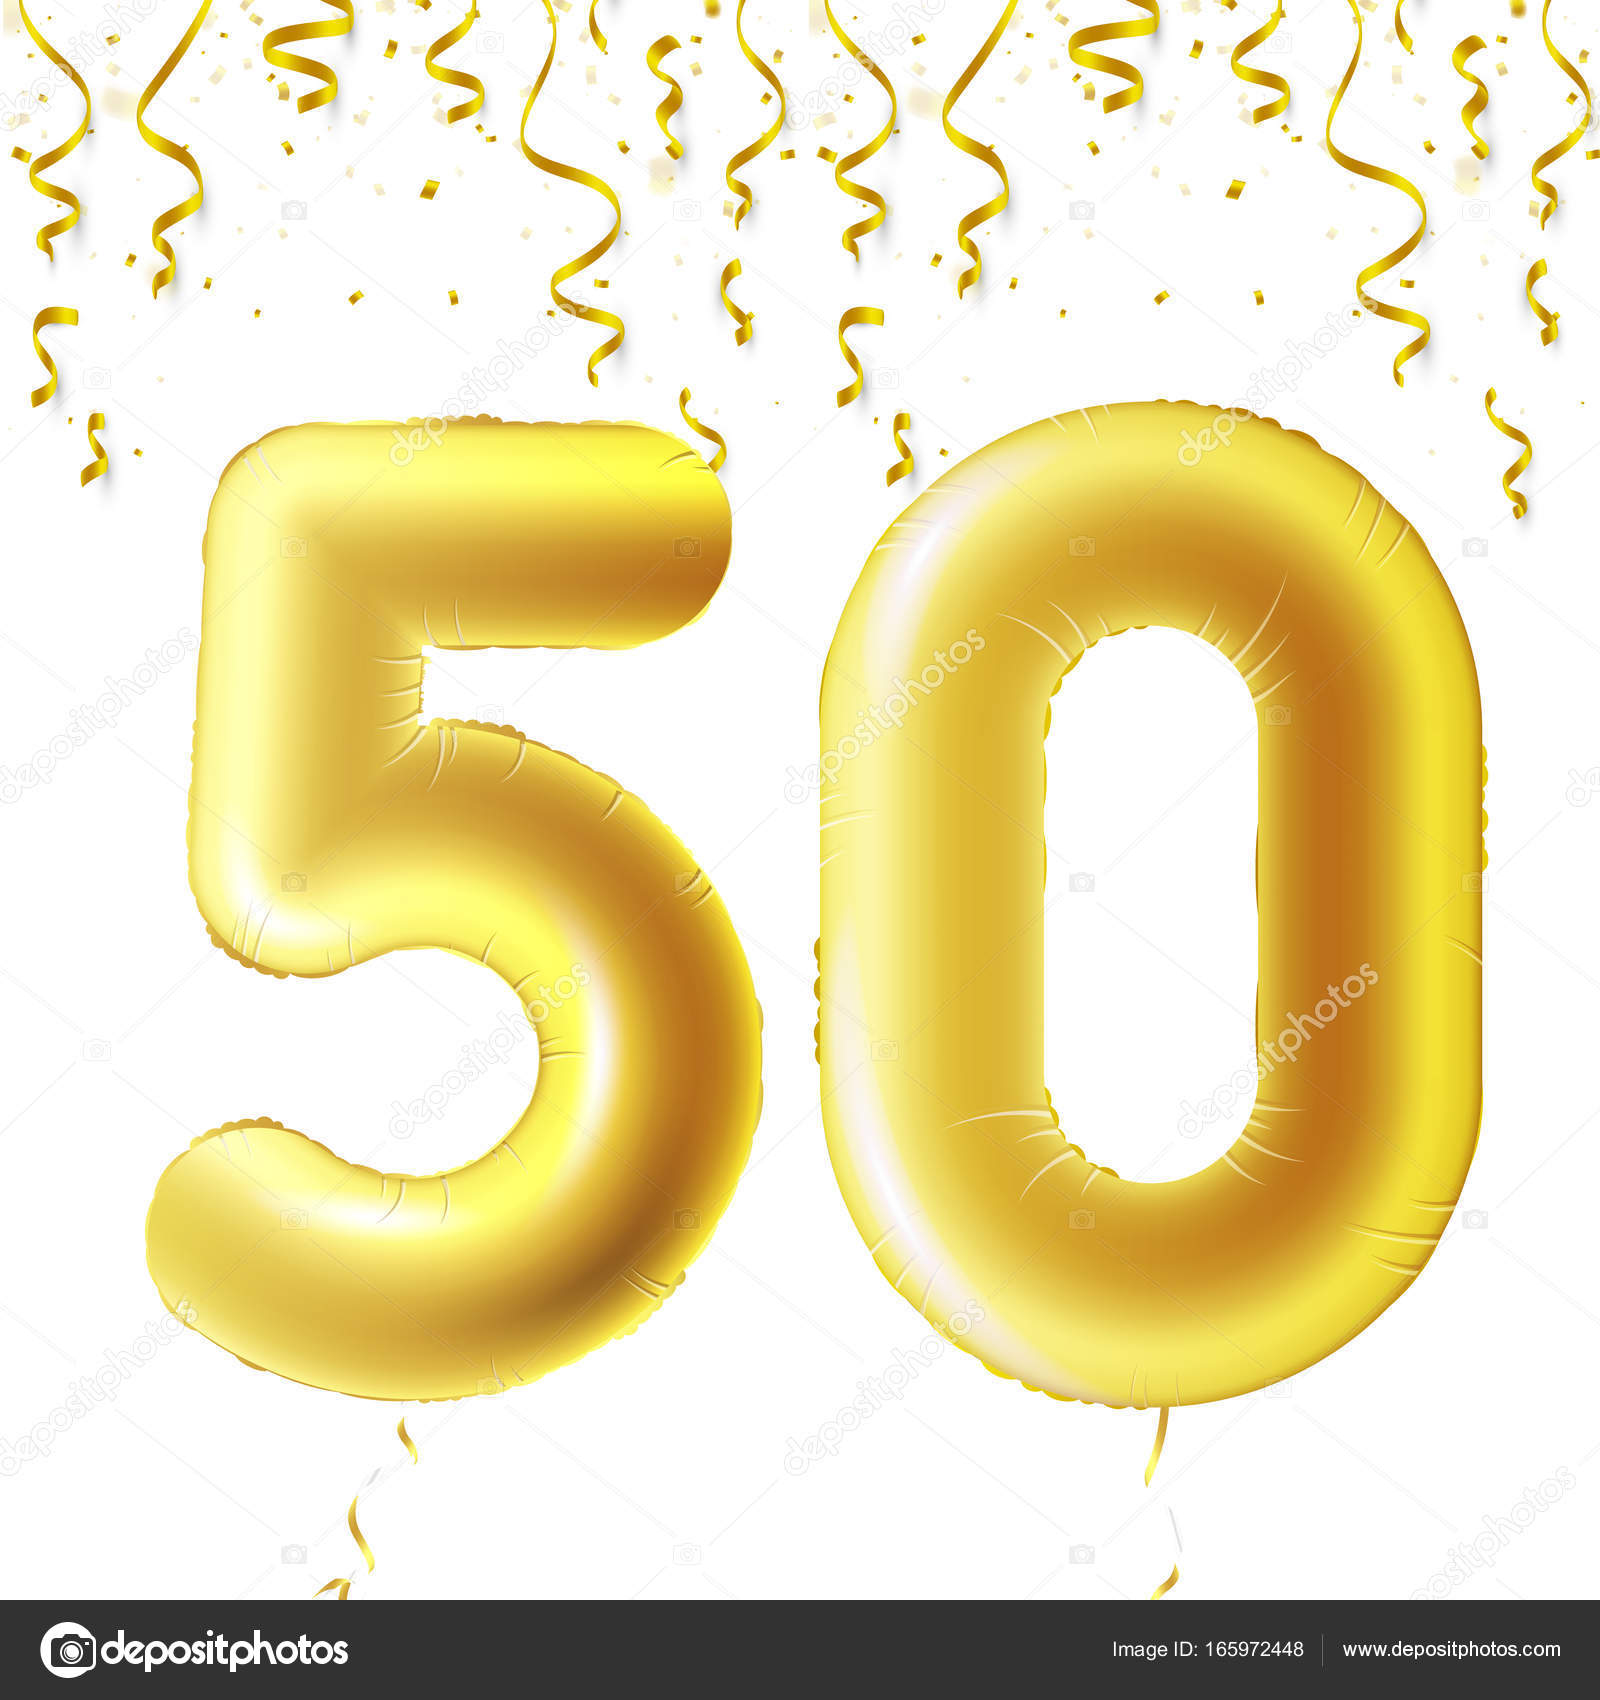 Inflatable golden balls with falling confetti and hanging ribbons inflatable golden balls with falling confetti and hanging ribbons fifty years symbol 50 buycottarizona Choice Image